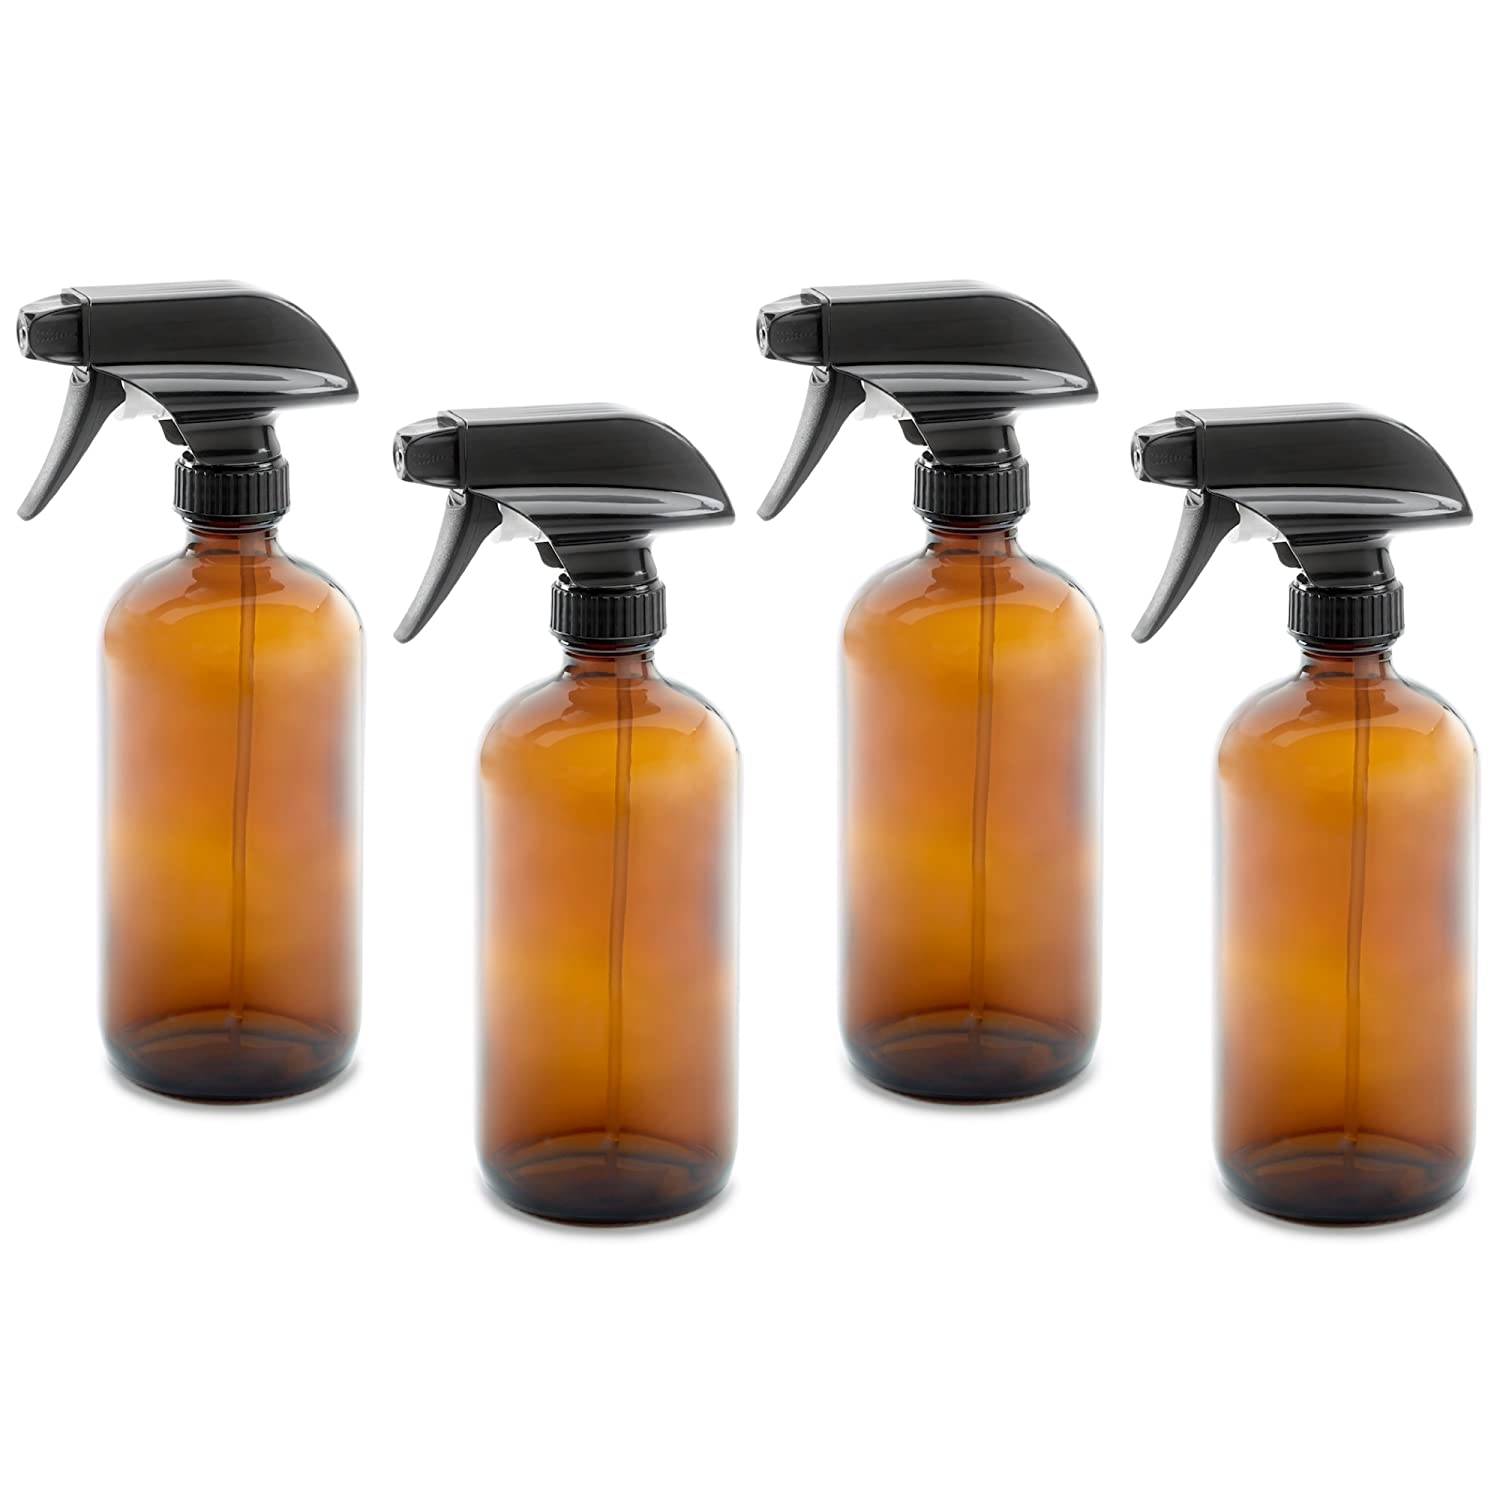 16oz / 500 ML Empty Amber Dark Brown Glass Spray Bottles w/Labels, Caps, and Funnel - Mist & Stream Trigger Sprayer - BPA Free - Boston Round Heavy Duty Bottle - For Essential Oils, Cleaning, Kitchen, Iron, Hair